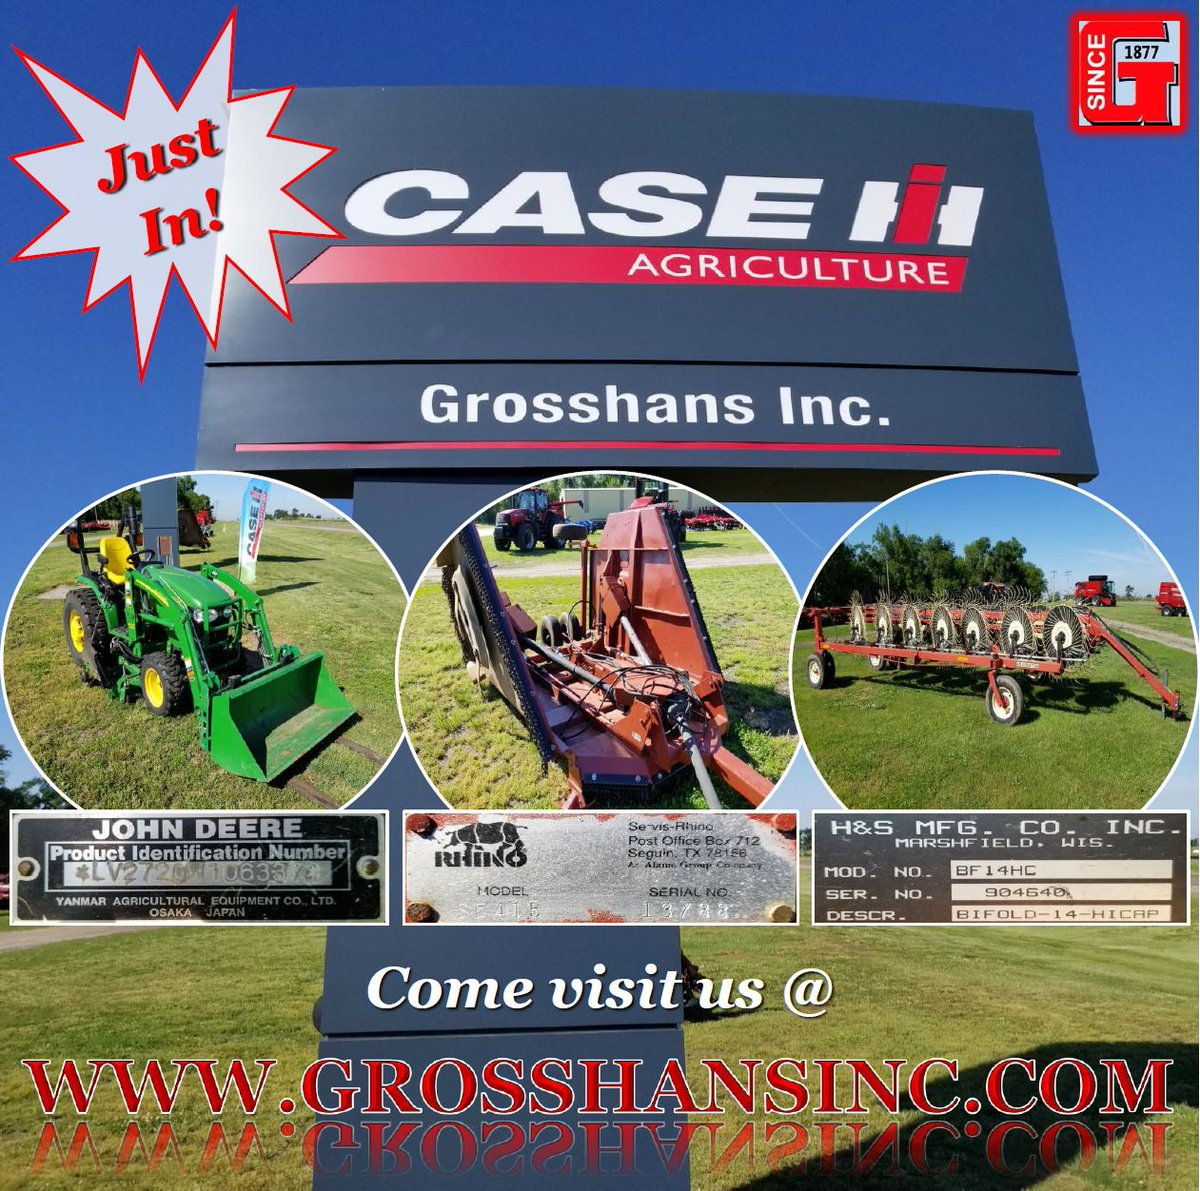 Grosshans Inc on Twitter: